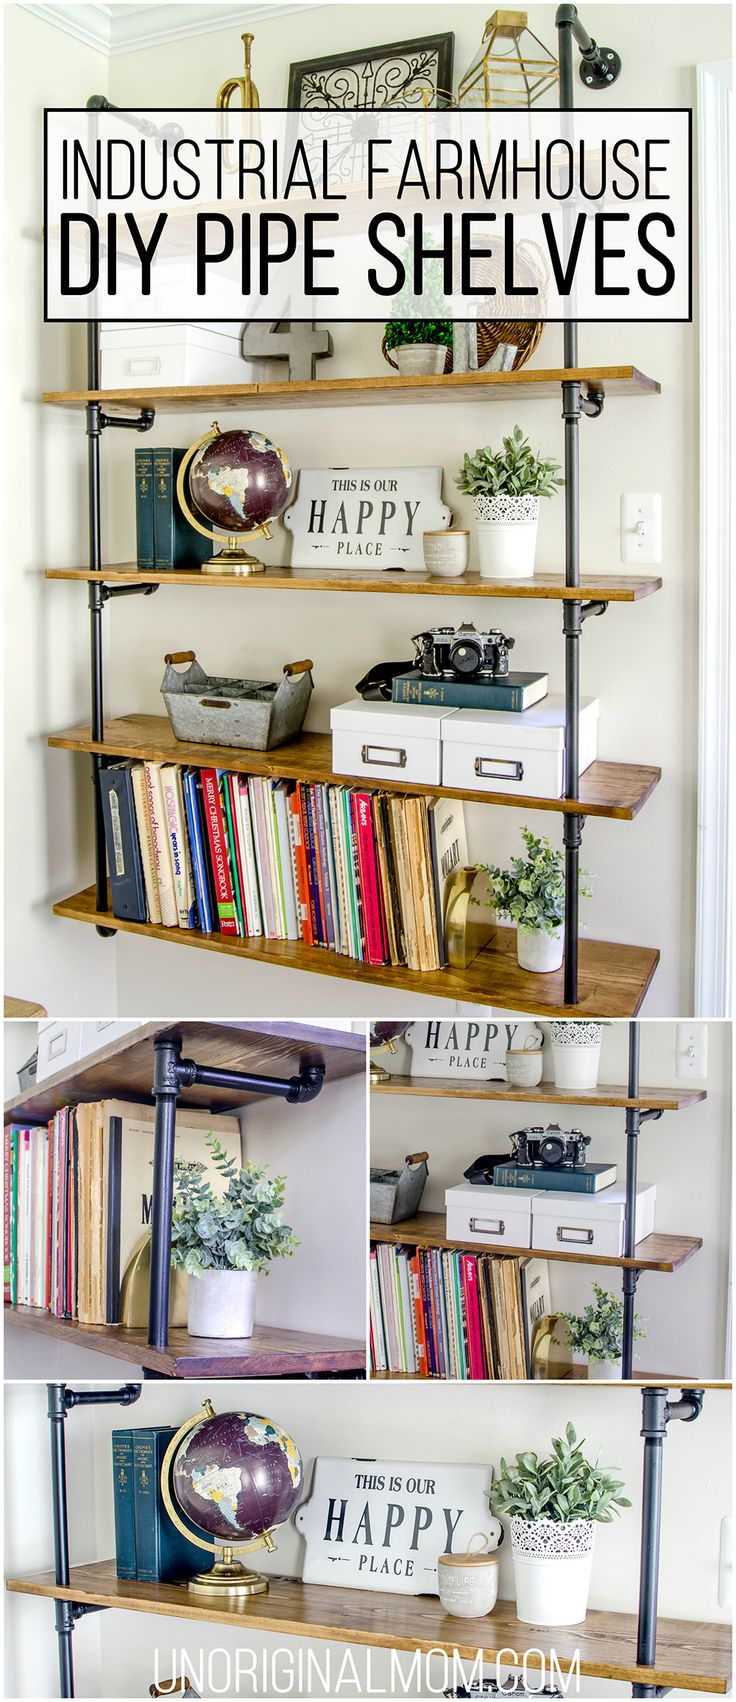 Pipe shelves for an industrial farmhouse office - such a great(and affordable) way to add a lot of style and character to a room! | industrial farmhouse pipe shelves | pipe shelving | fixer upper shelves | one room challenge